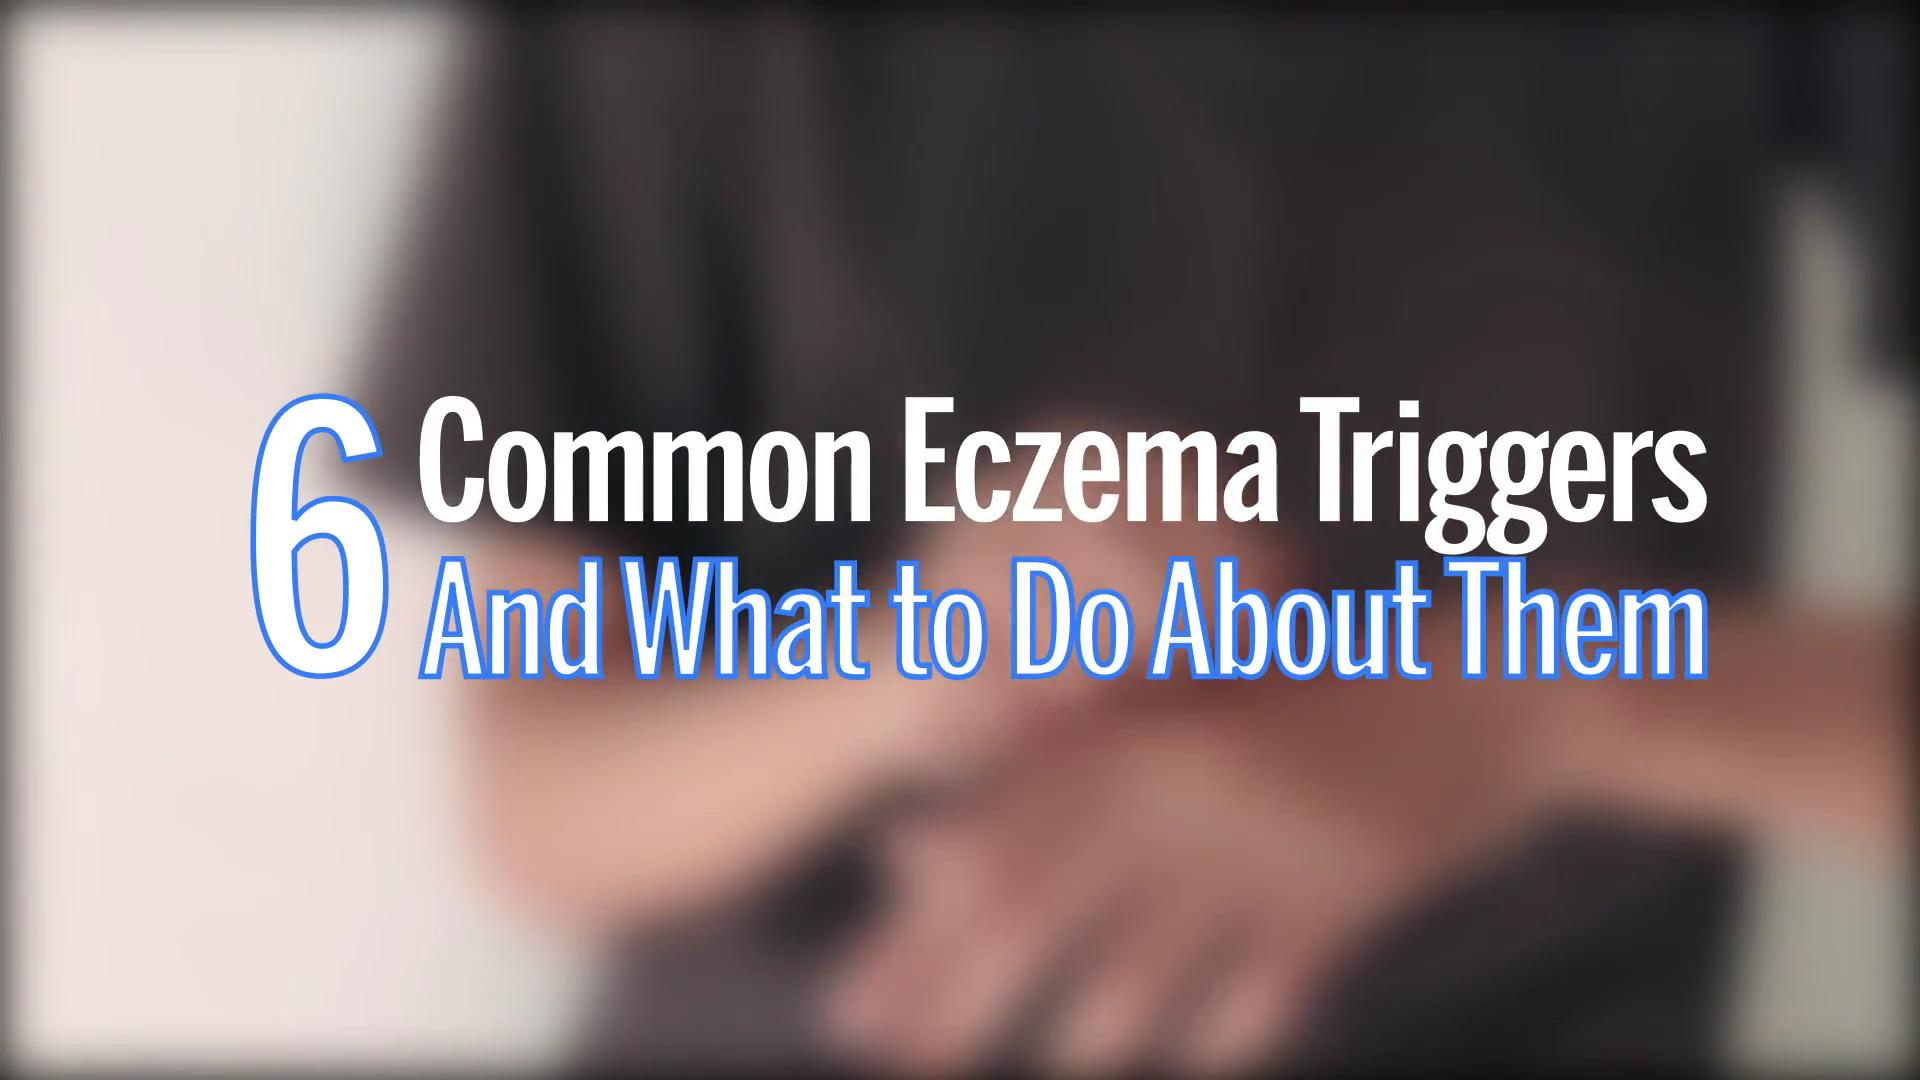 11 Things People With Eczema Want You to Know - Health